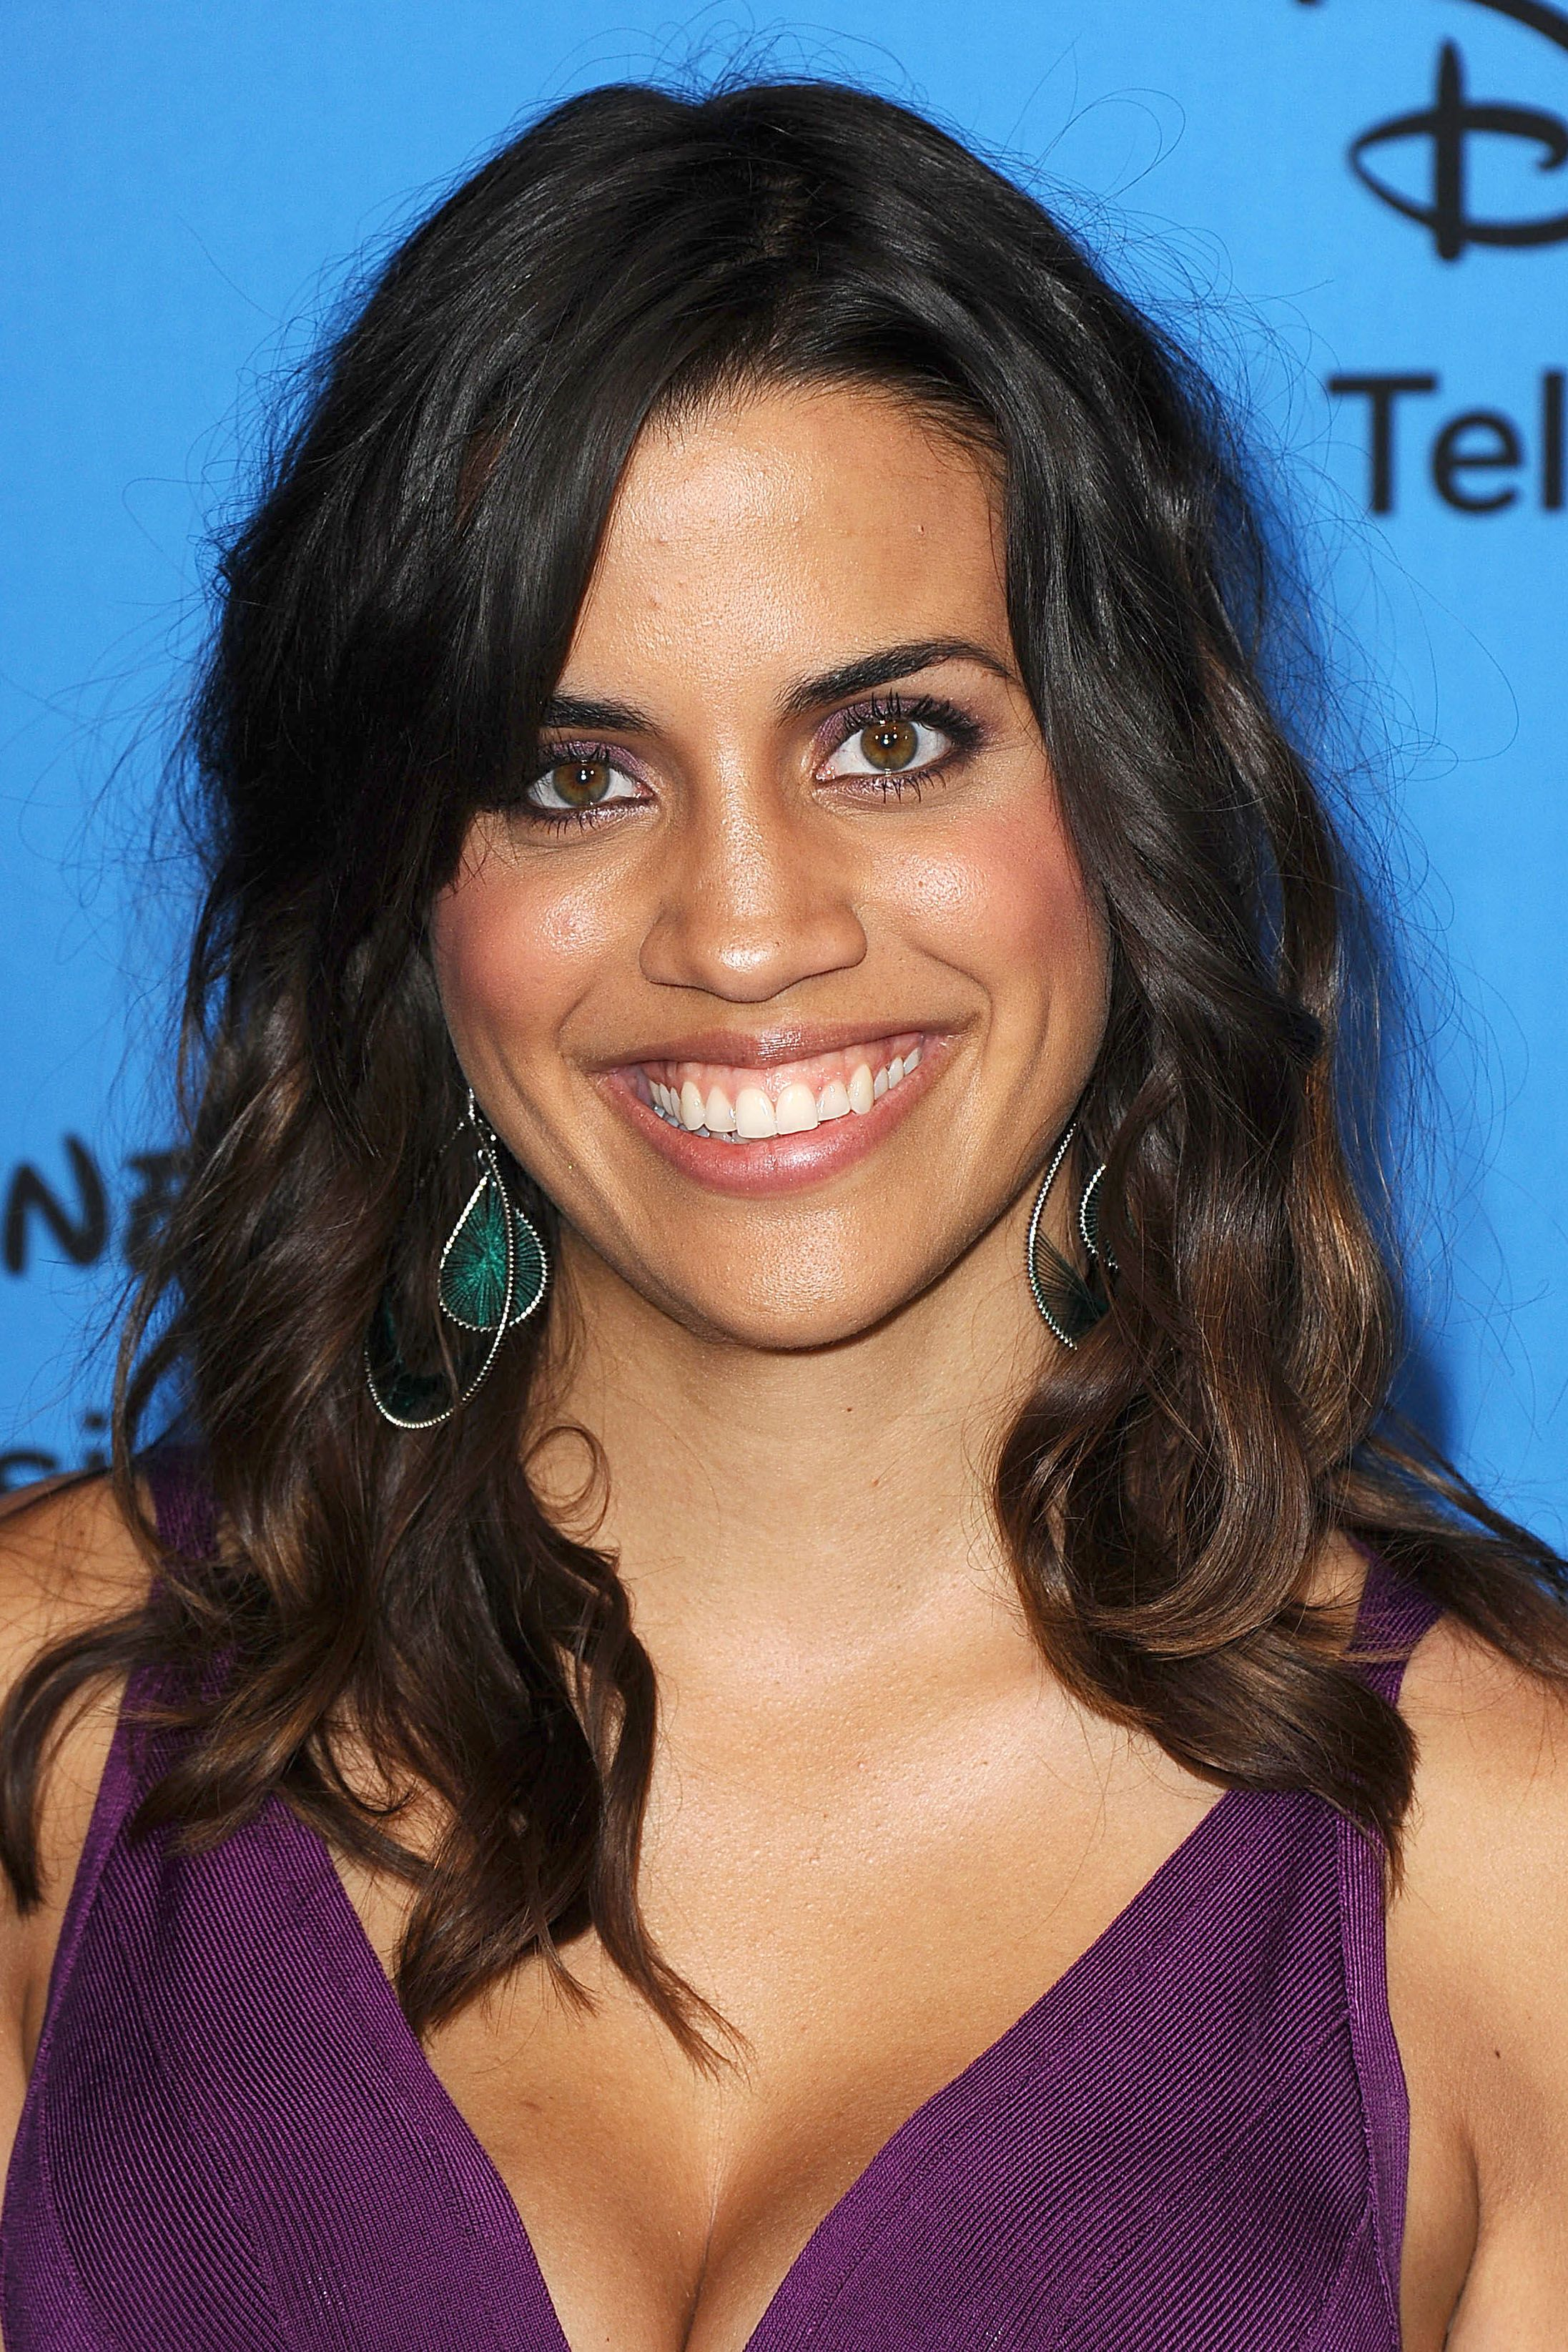 Celebrity Natalie Morales naked (64 foto and video), Tits, Cleavage, Twitter, cameltoe 2020